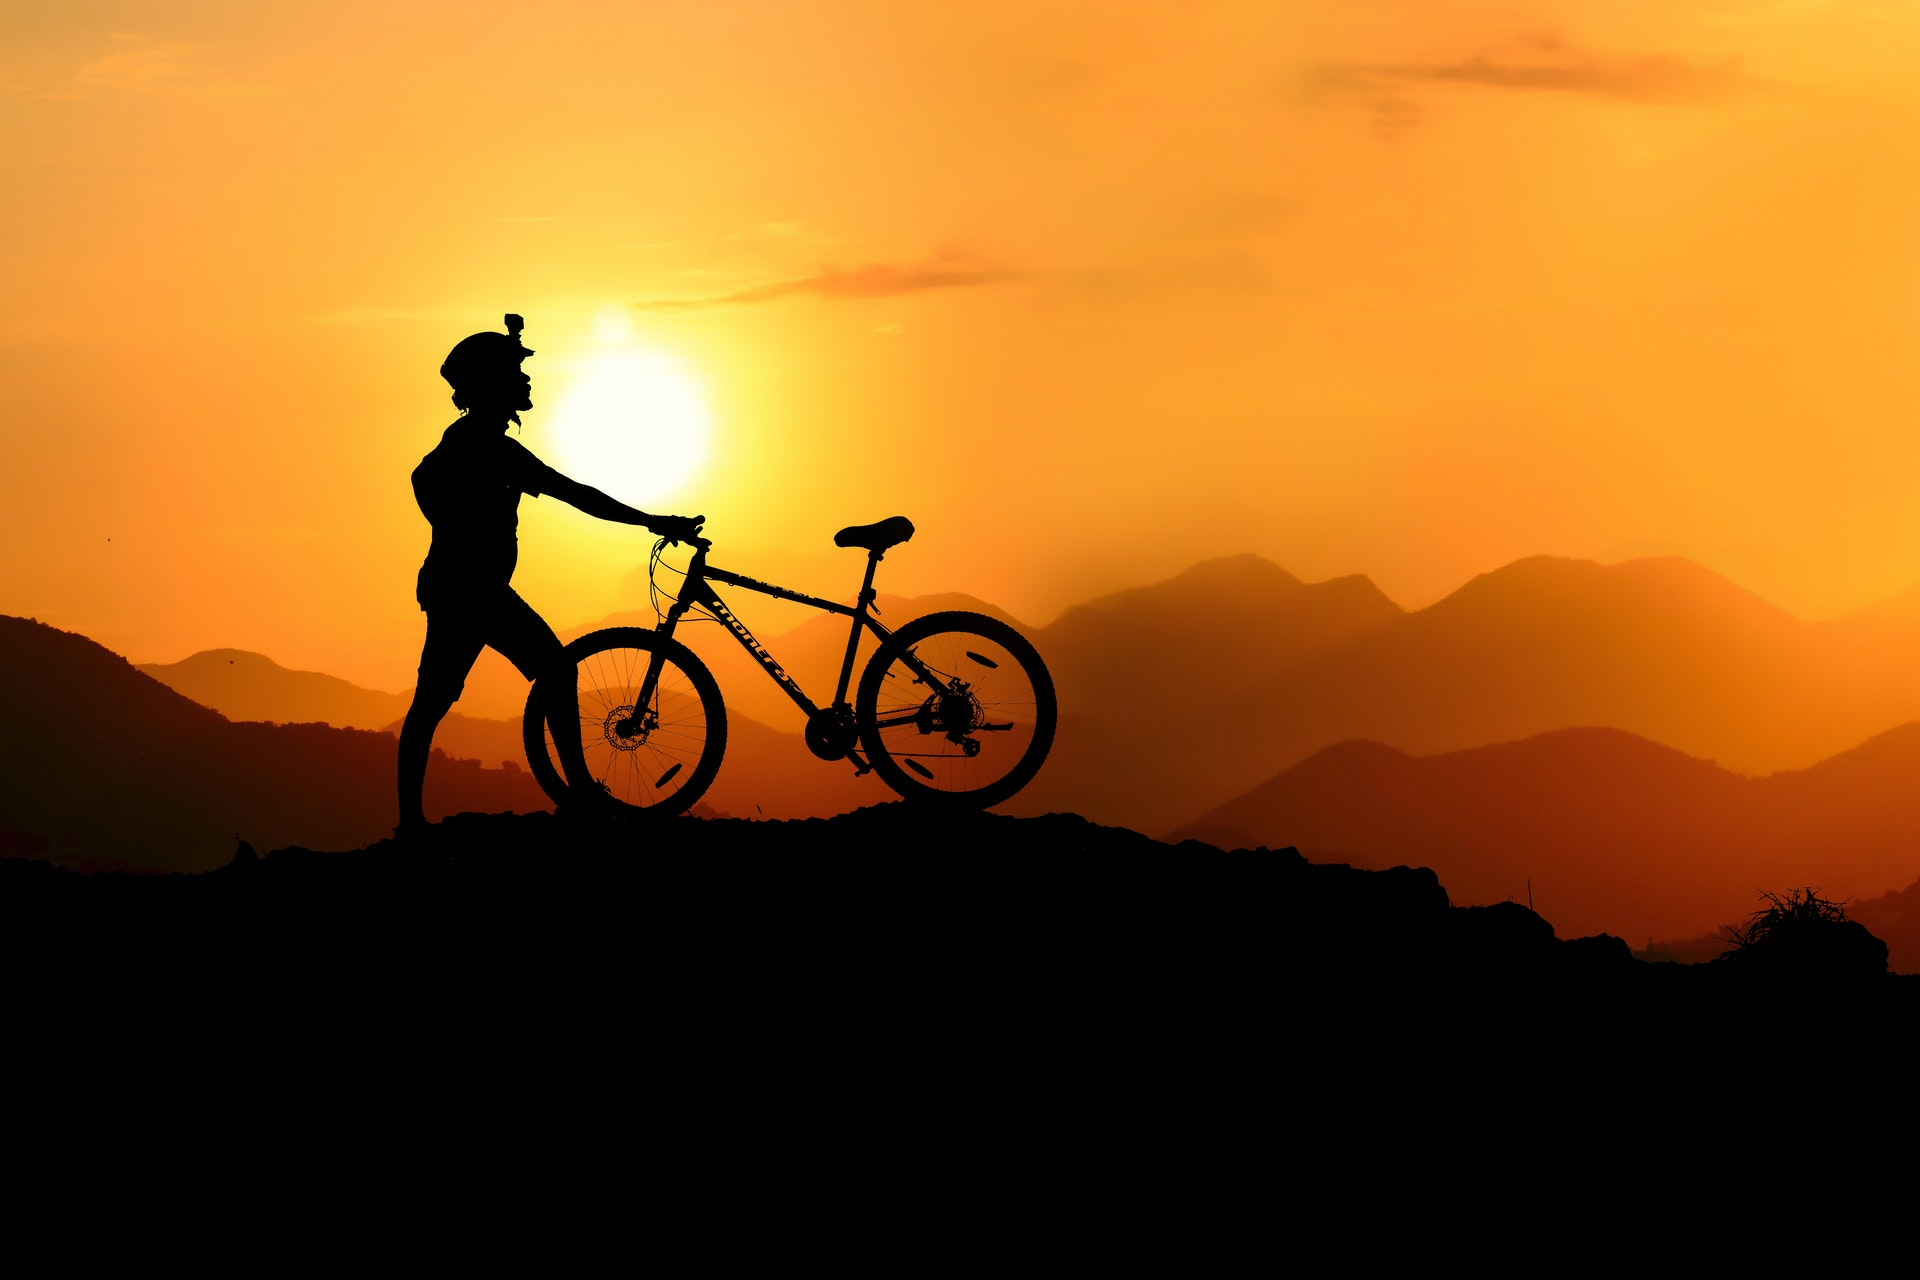 Bike rider on a hill at sunrise